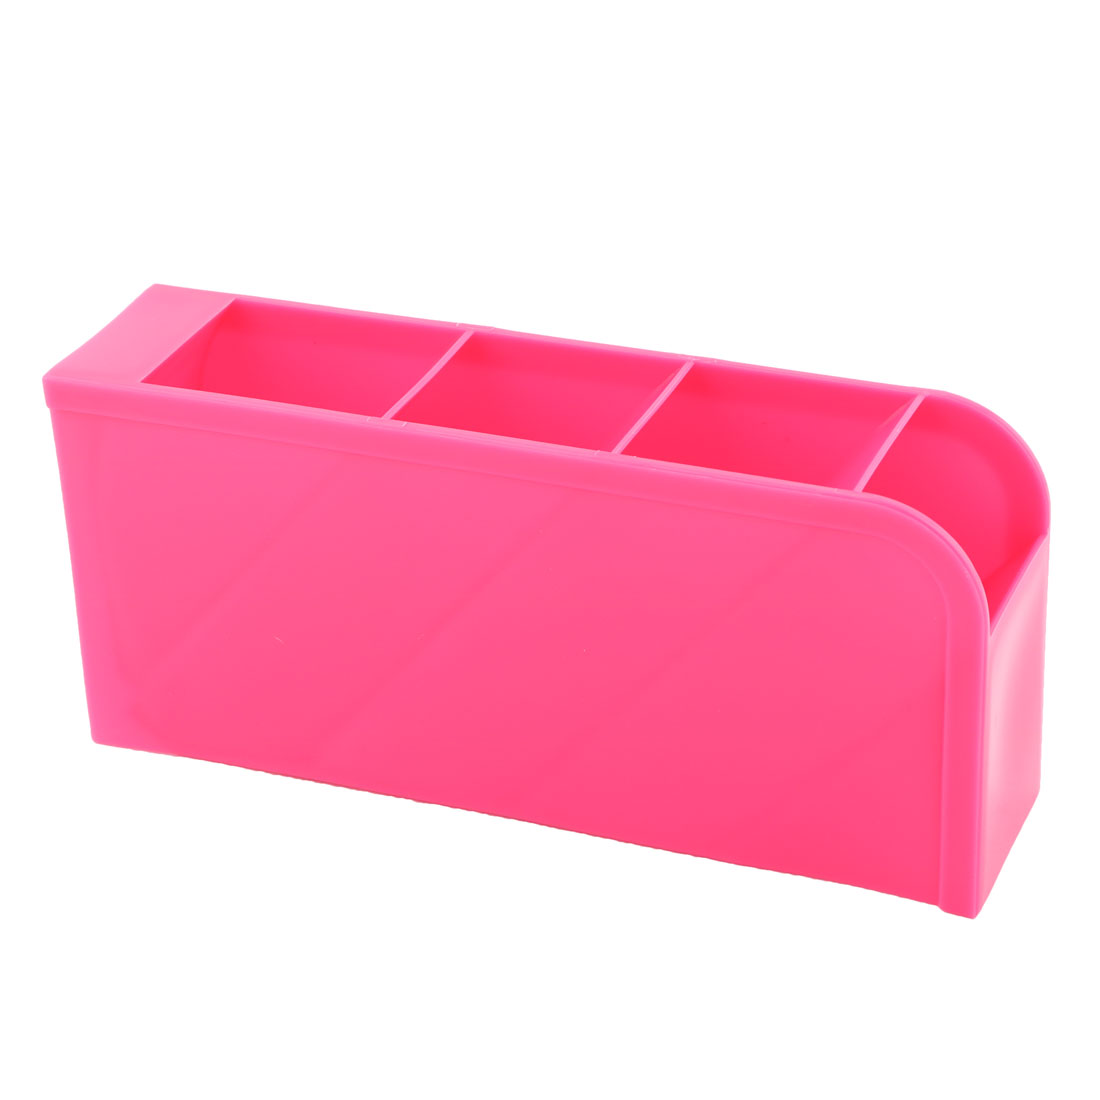 Household Bedroom Plastic Desktop 4 Slots Makeup Tool Holder Storage Box Case Fuchsia